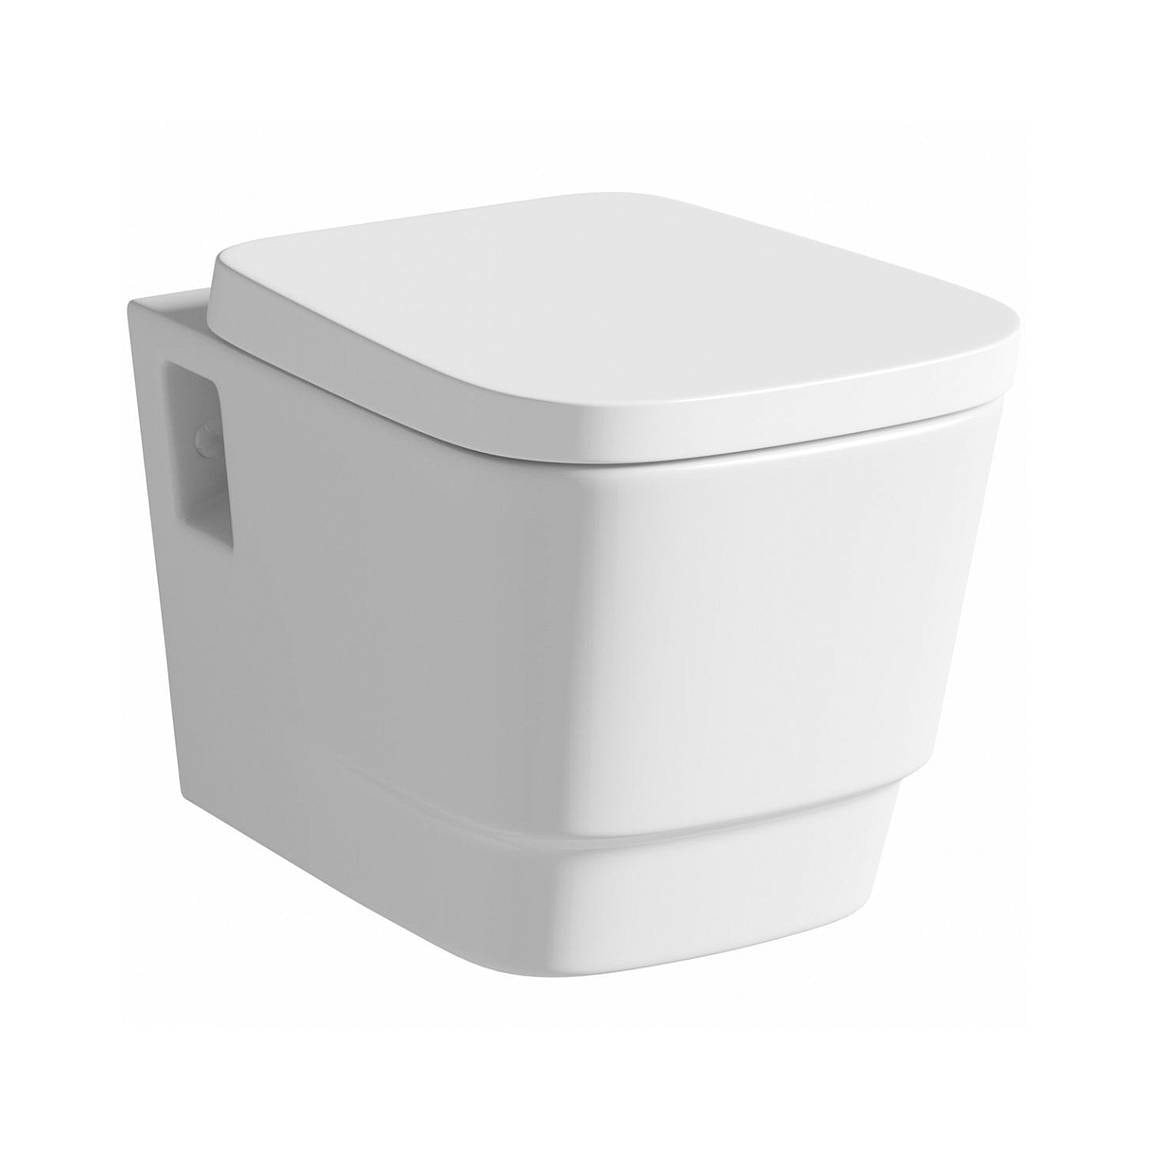 Mode Princeton wall hung toilet with soft close seat